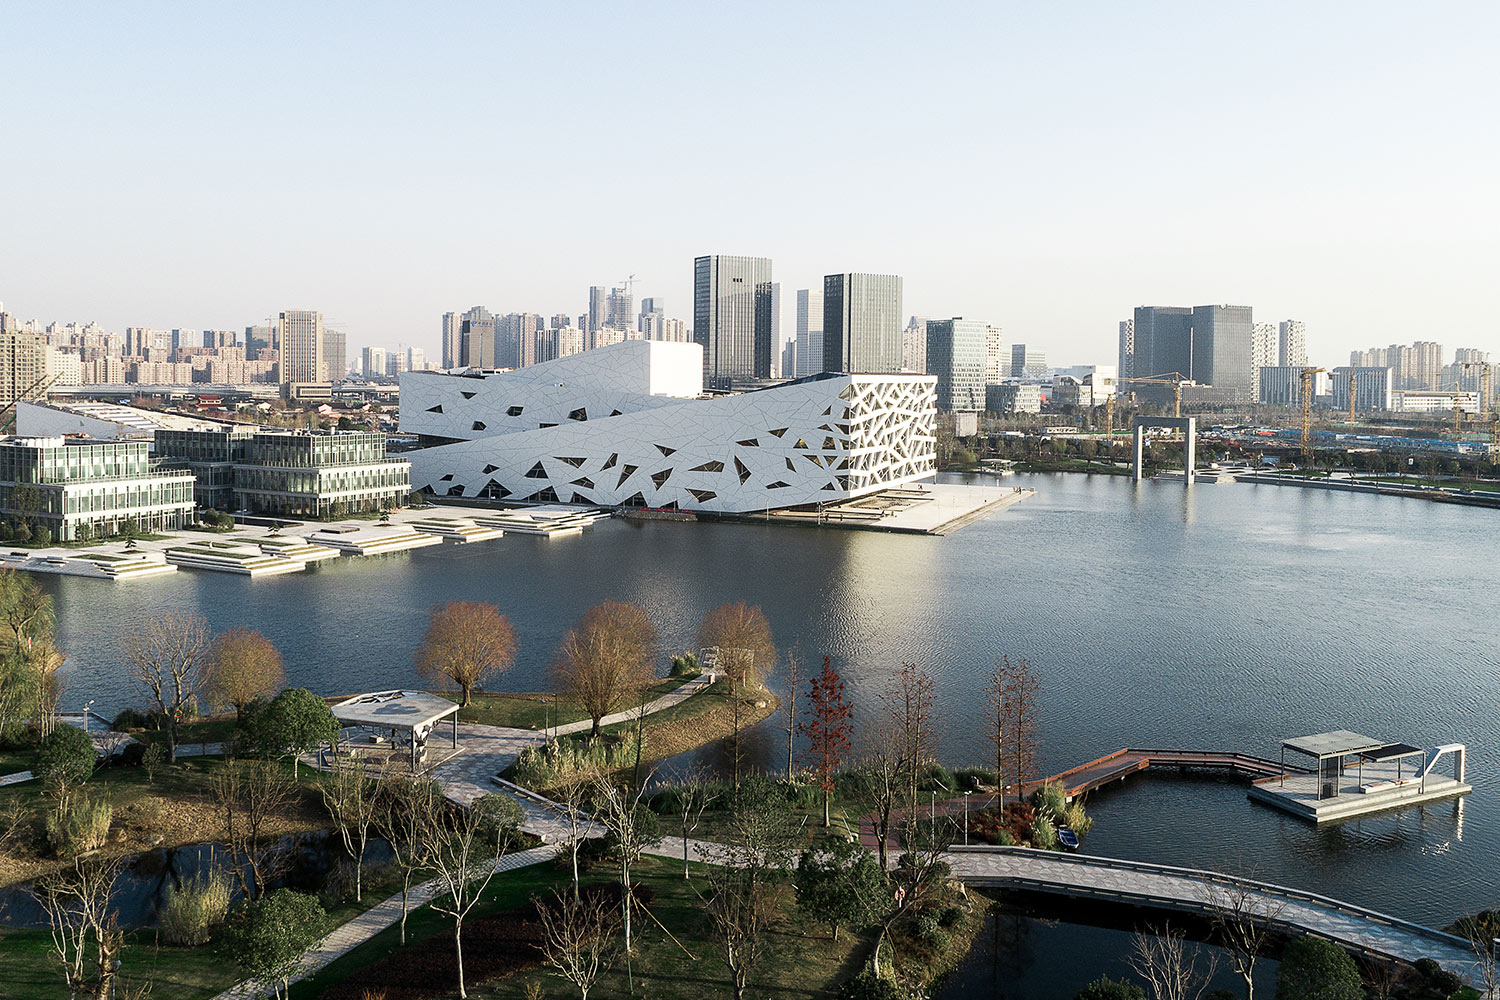 Aerial view of Yuhang Cultural Arts Centre sitting above the lake